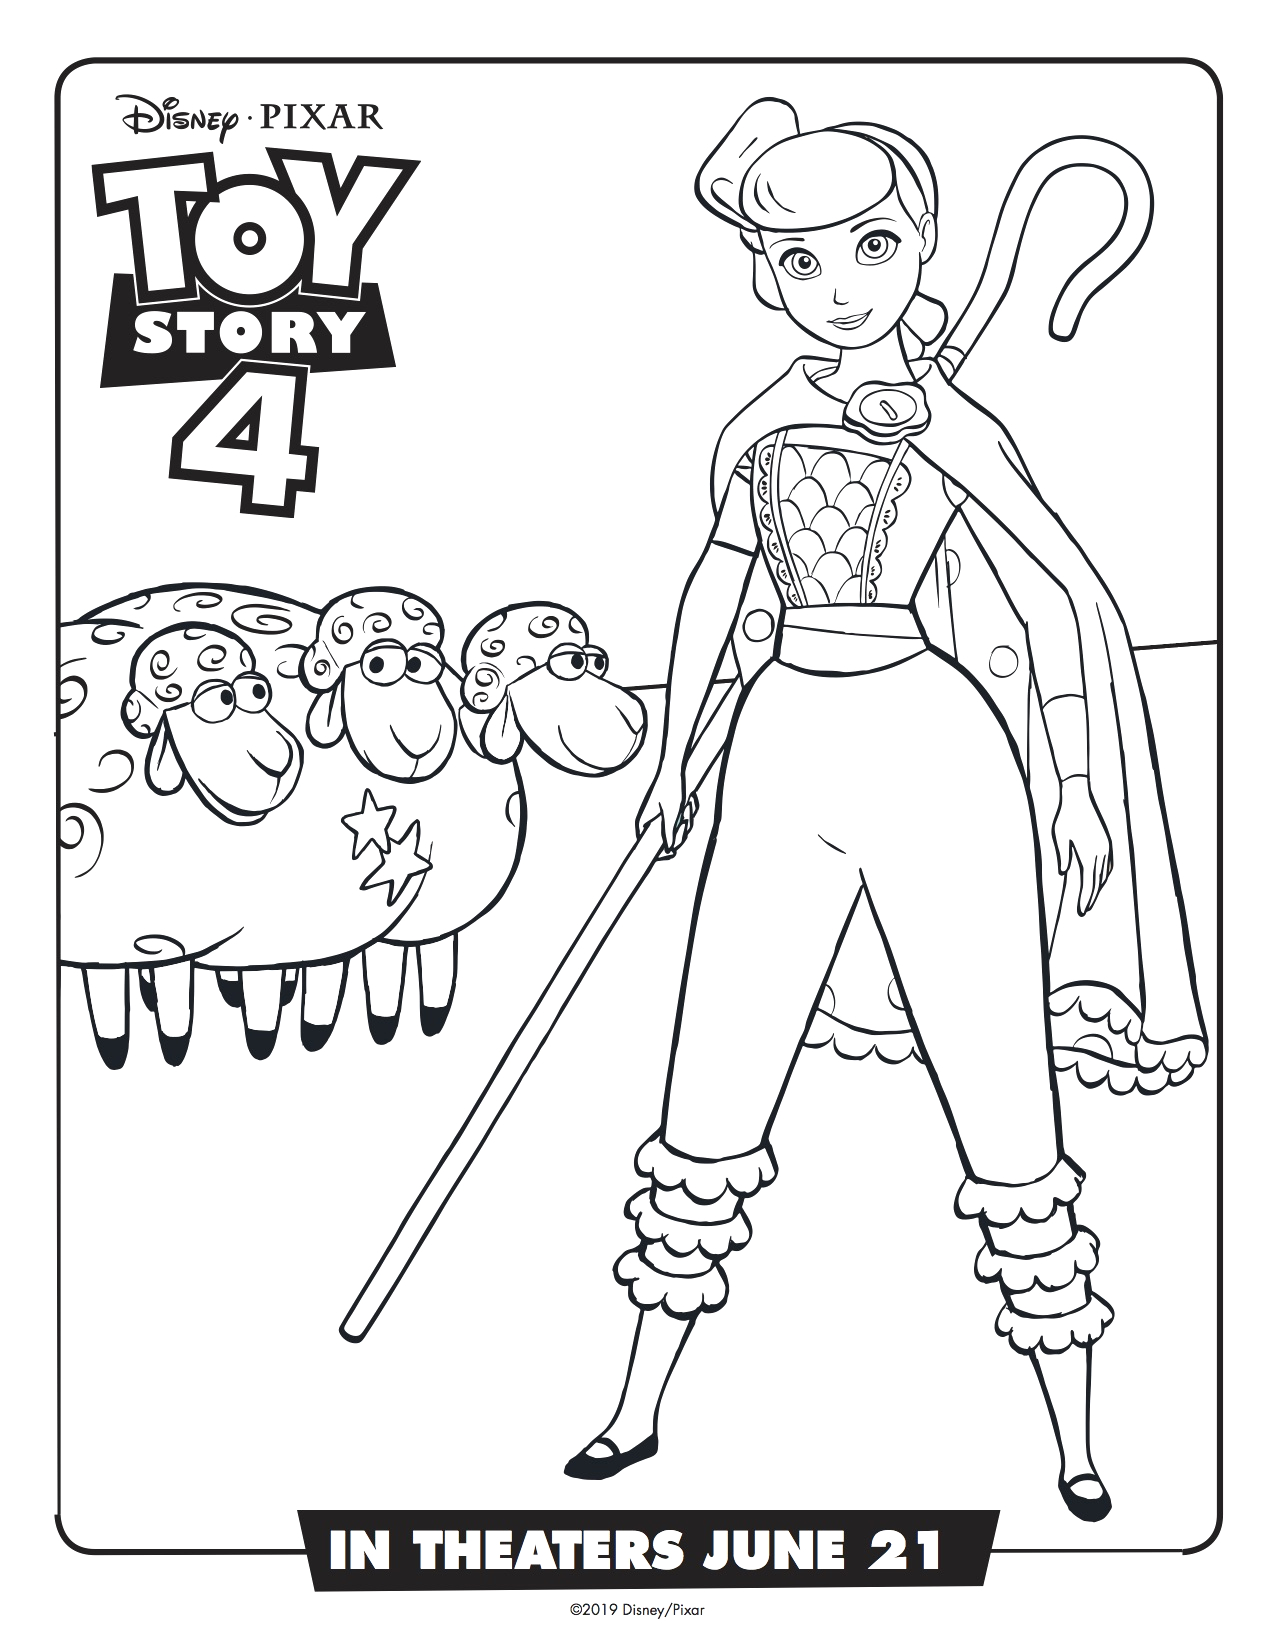 toy story 4 bo peep printable coloring page